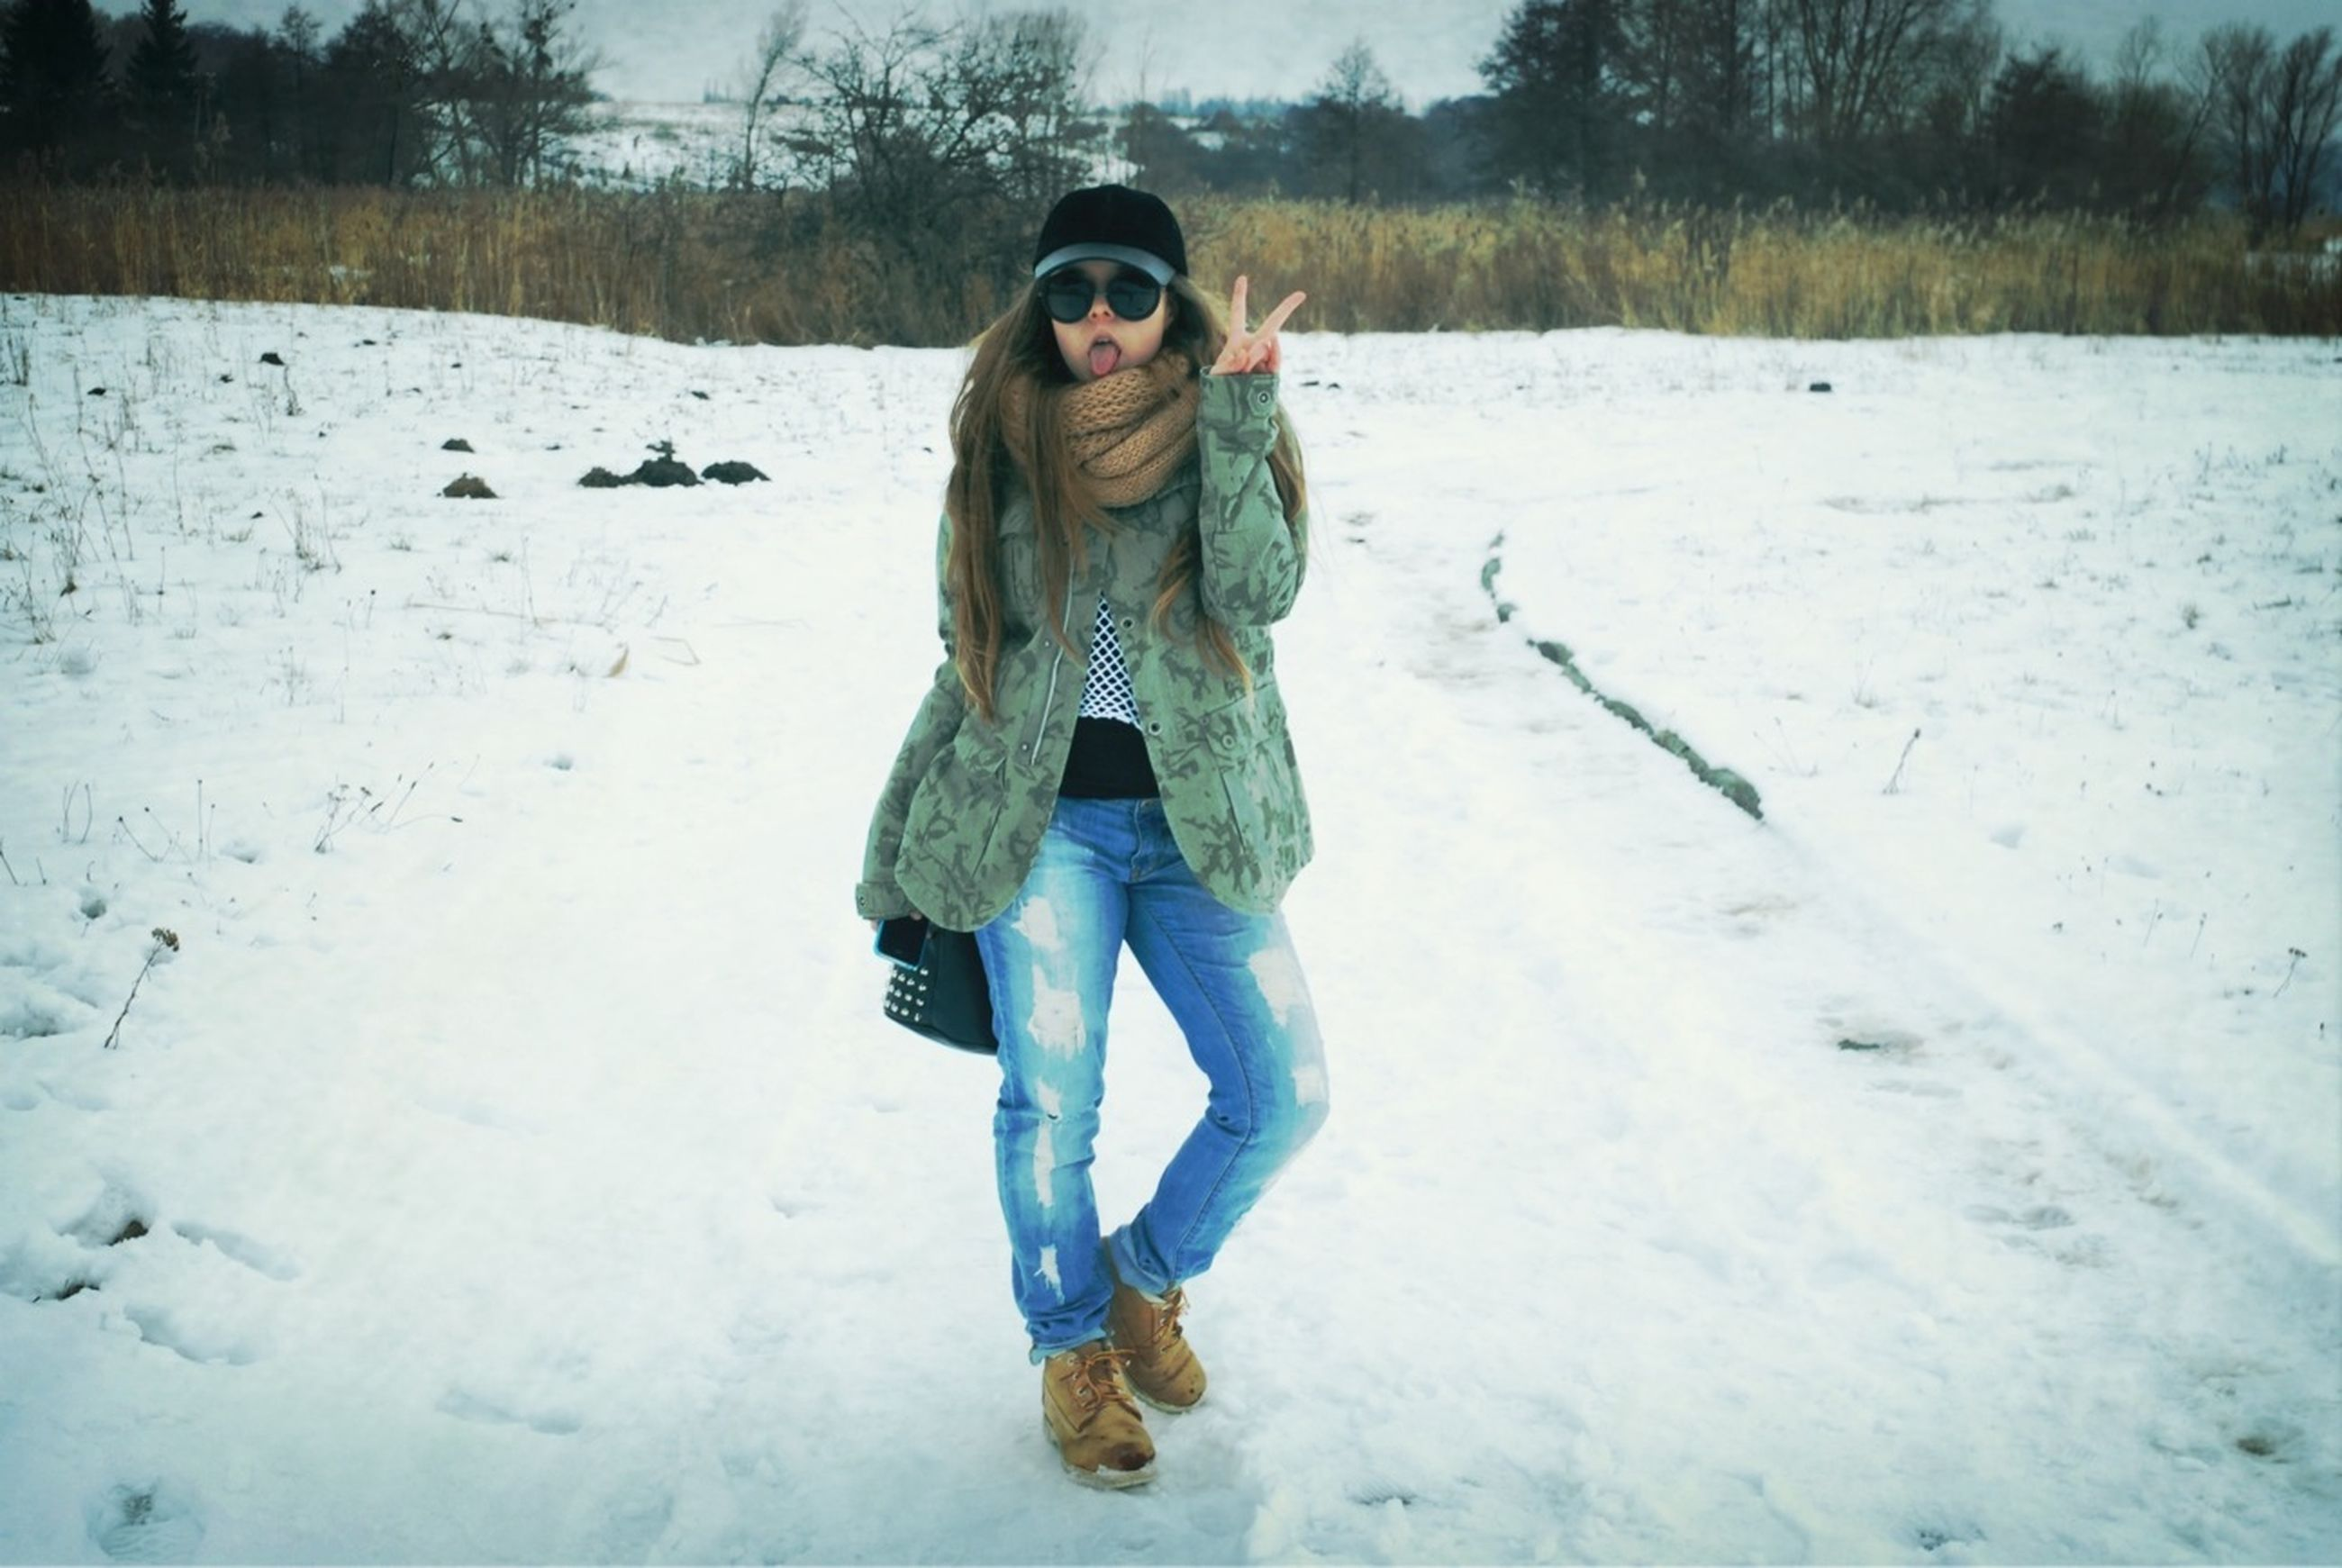 snow, winter, person, looking at camera, cold temperature, portrait, full length, young adult, lifestyles, front view, season, leisure activity, casual clothing, smiling, warm clothing, happiness, young women, standing